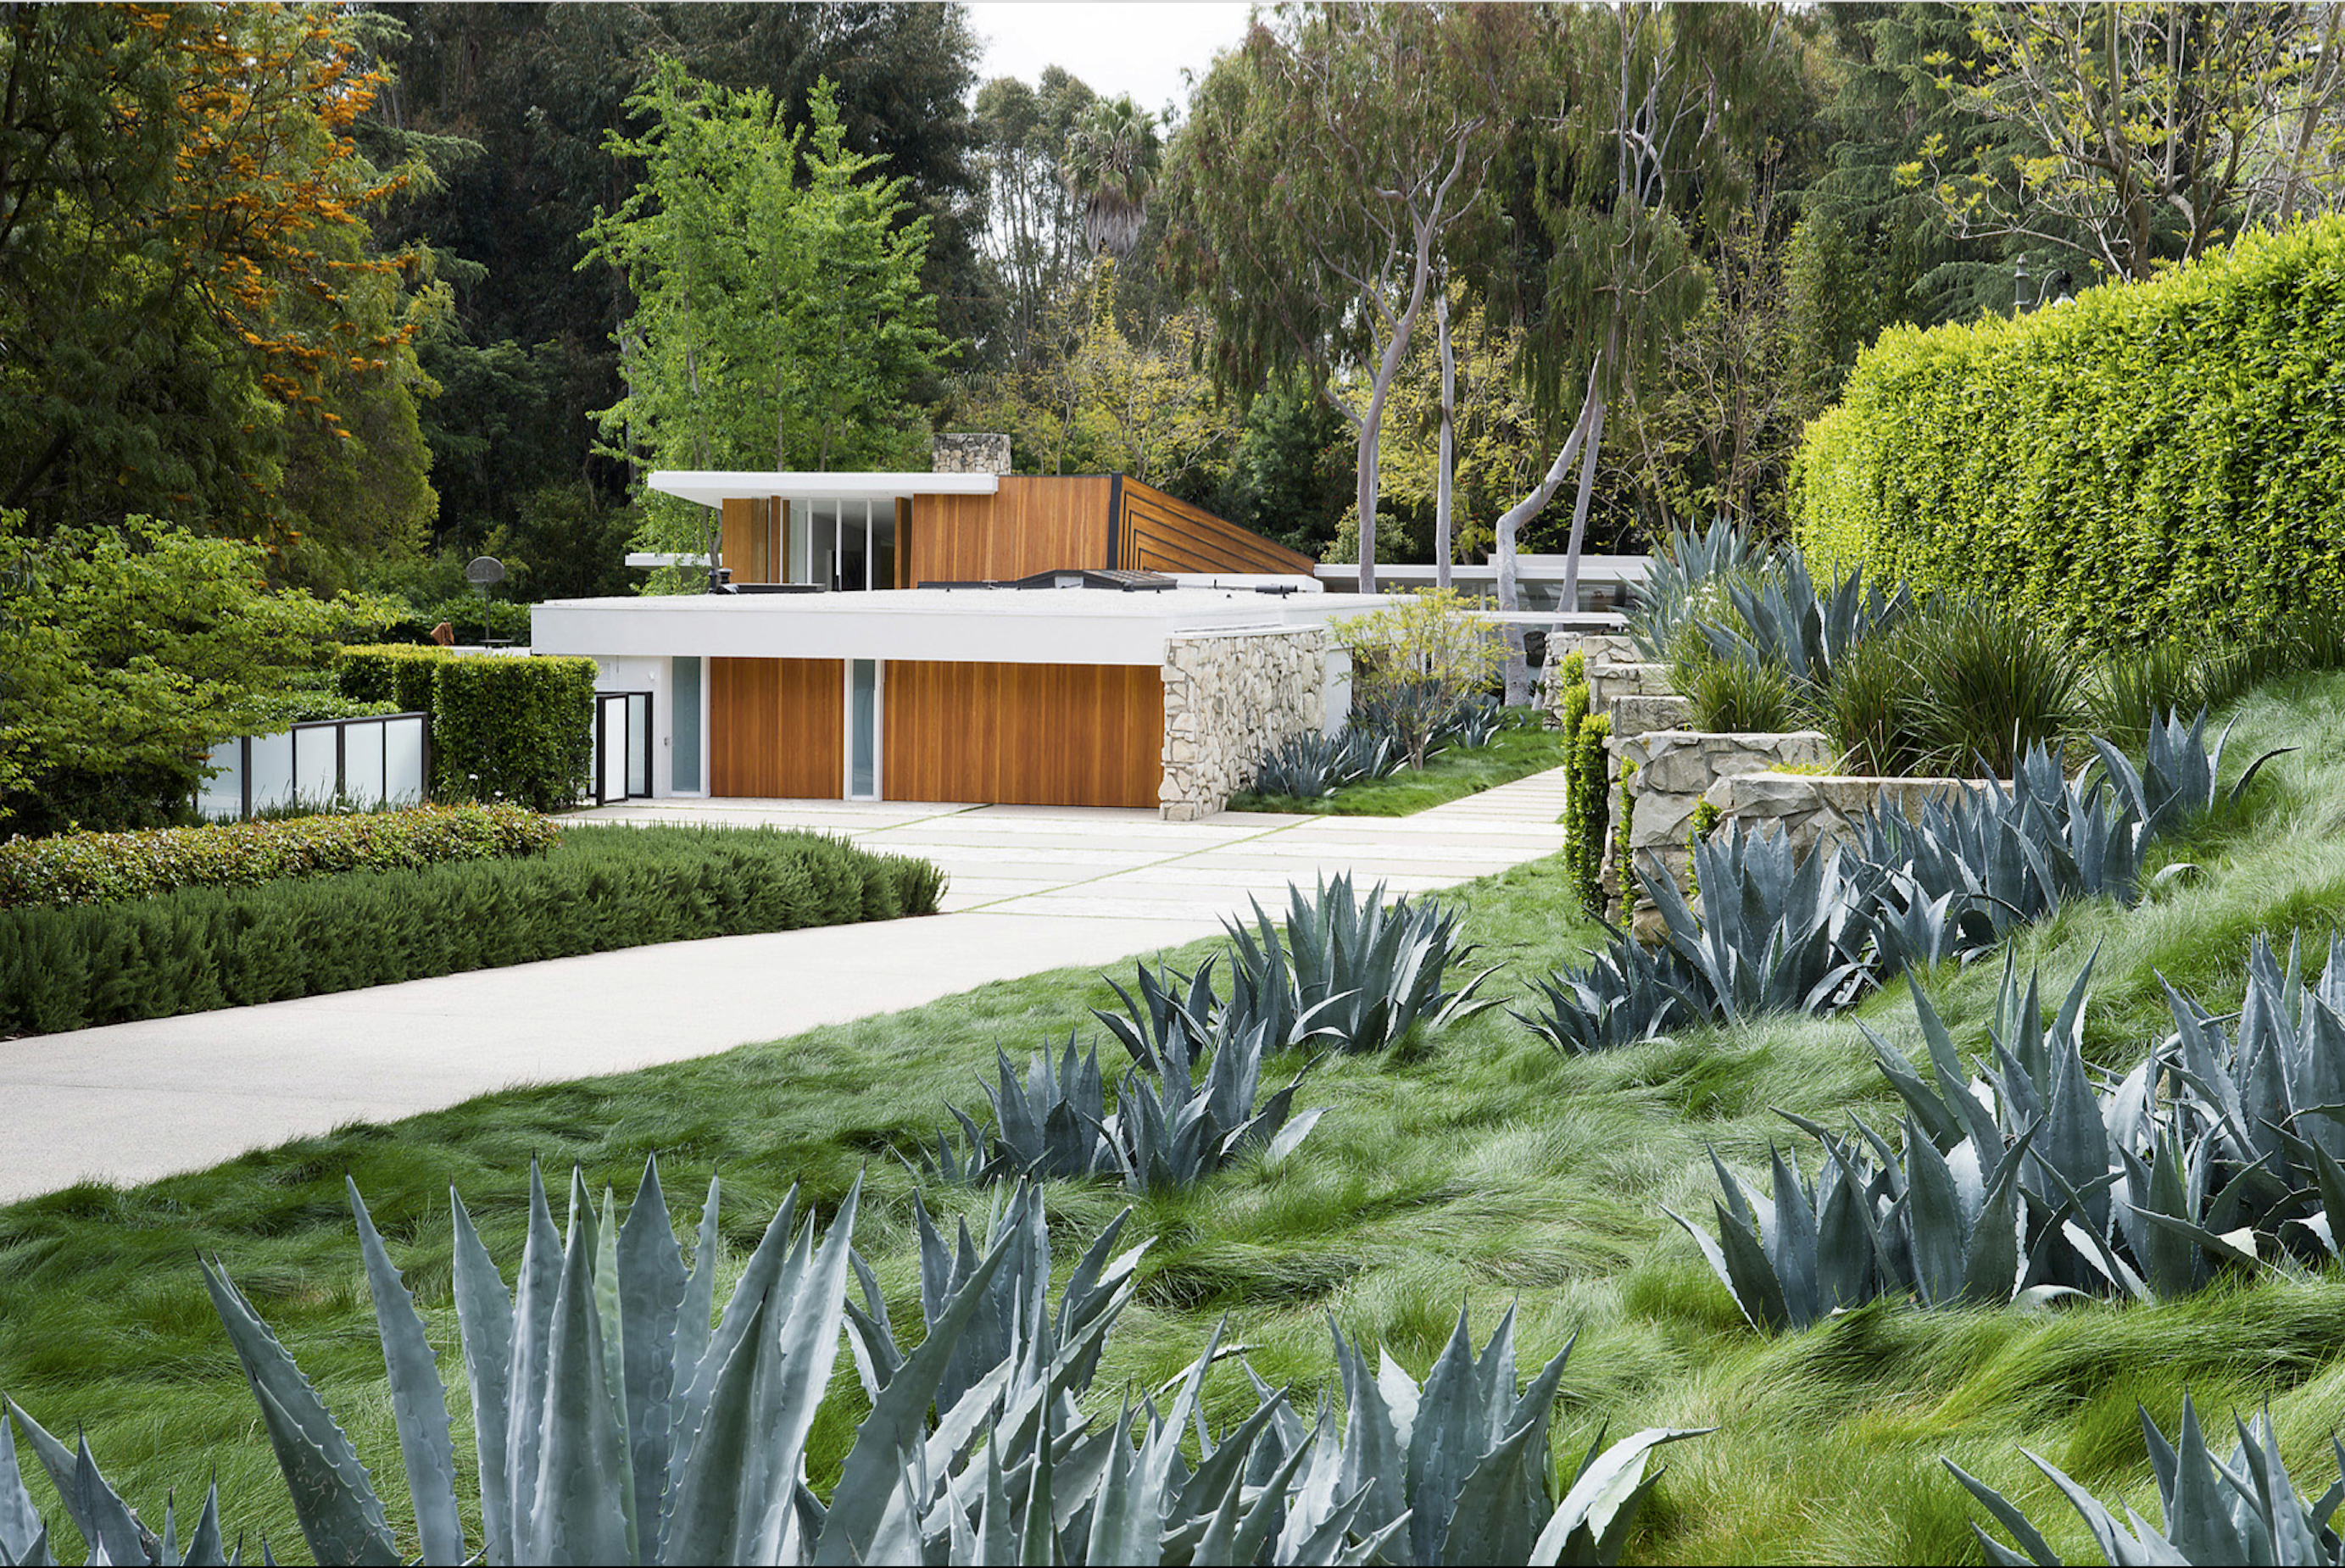 Gary Cooper House, Los Angeles, California, Quincy Jones architect, 2012